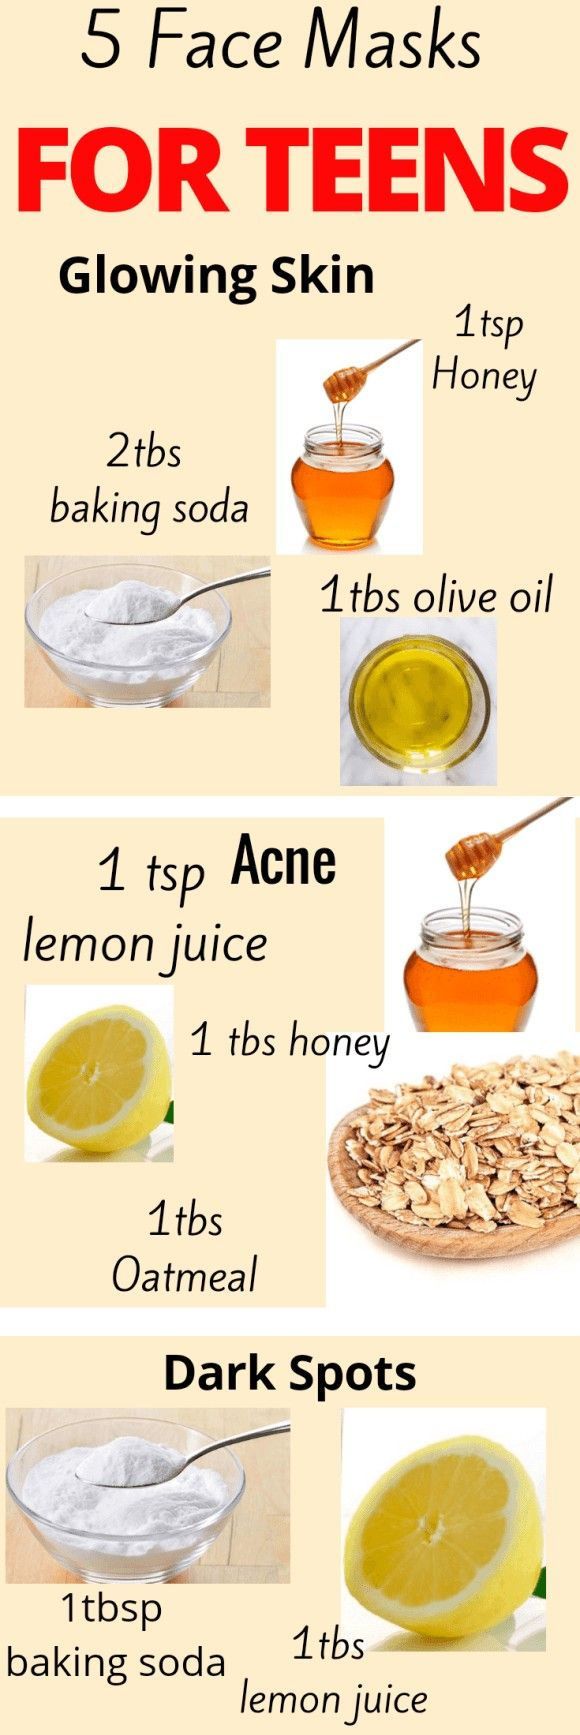 Diy Face Mask diy face mask for acne